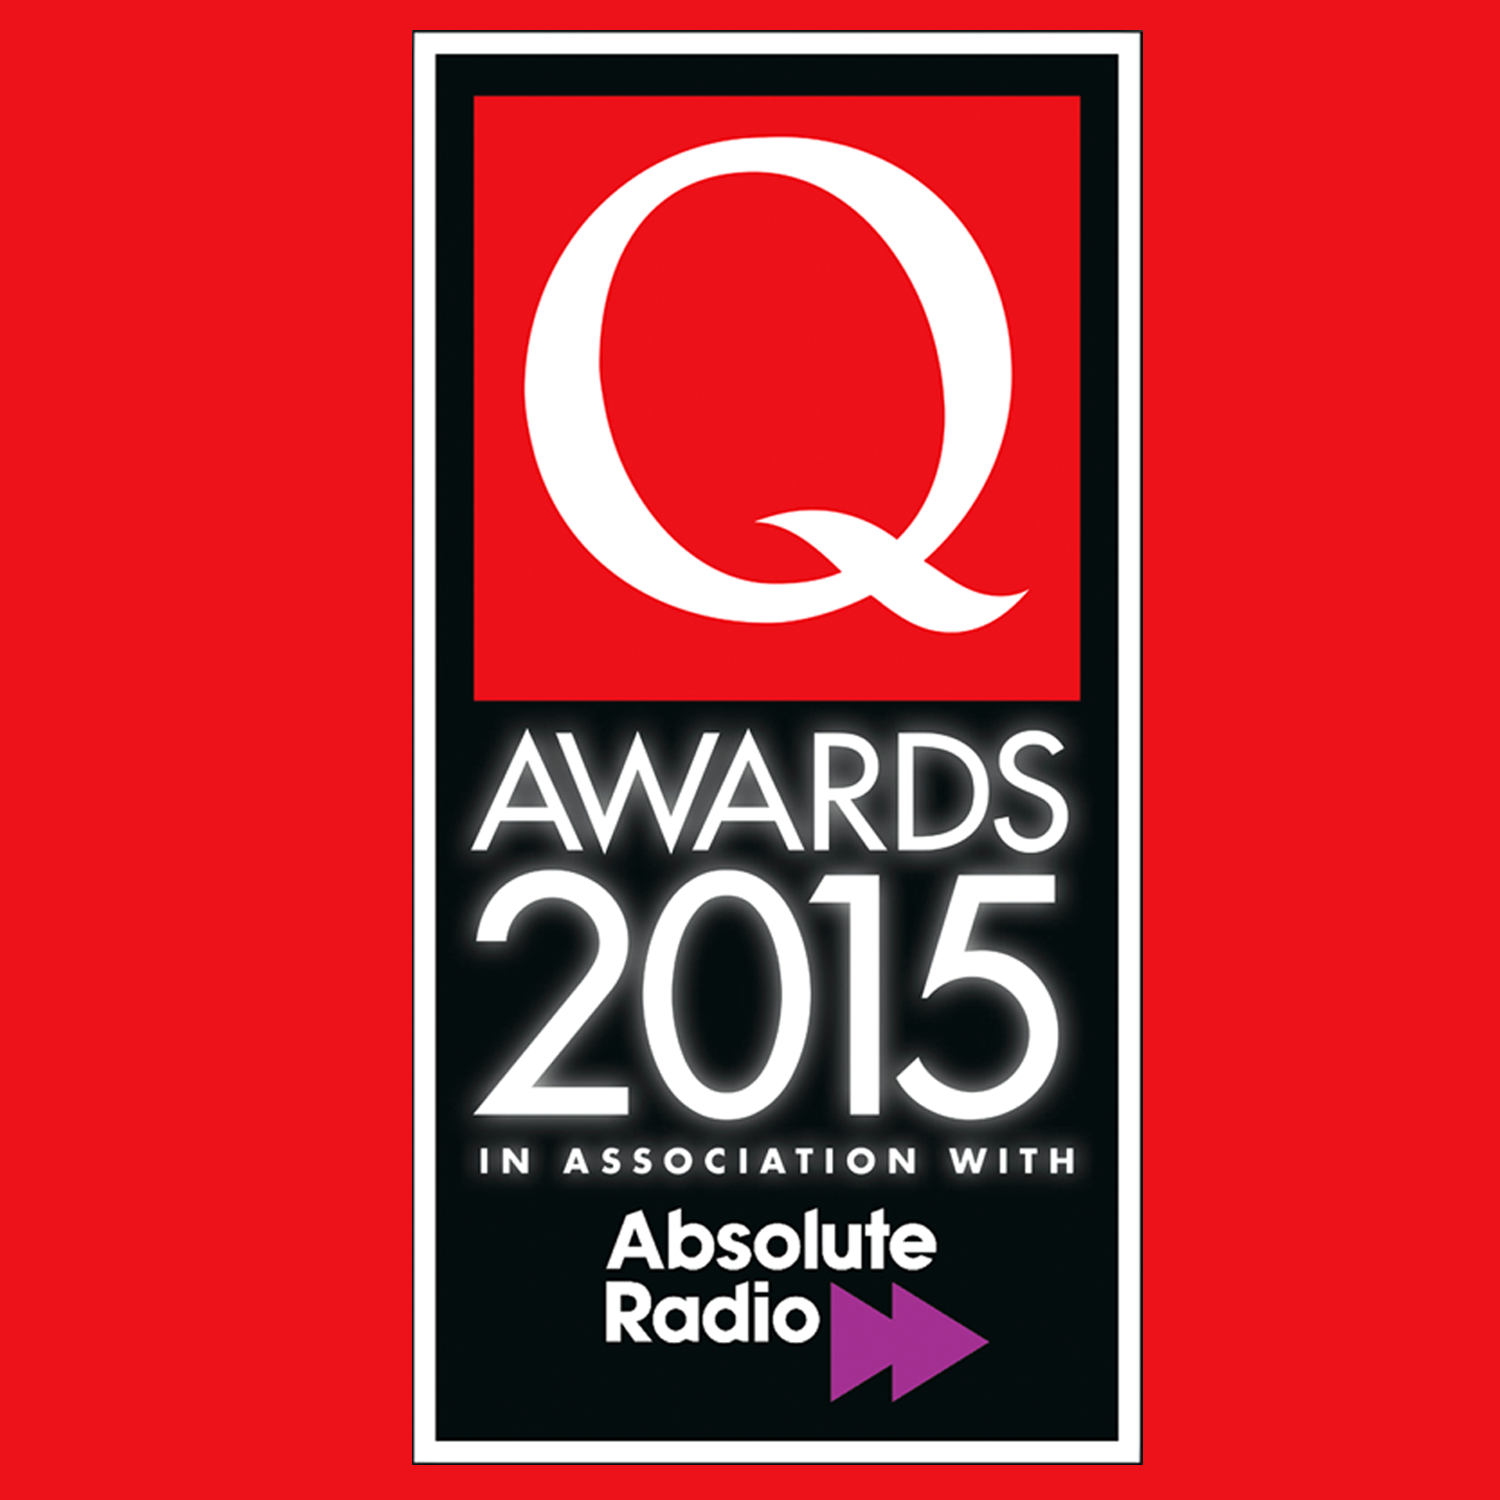 RT @Q_Awards: Vote now for the 2015 #QAwards and have your say on who makes this year's shortlist! http://t.co/bP8CgzWer8 http://t.co/1JV1H…